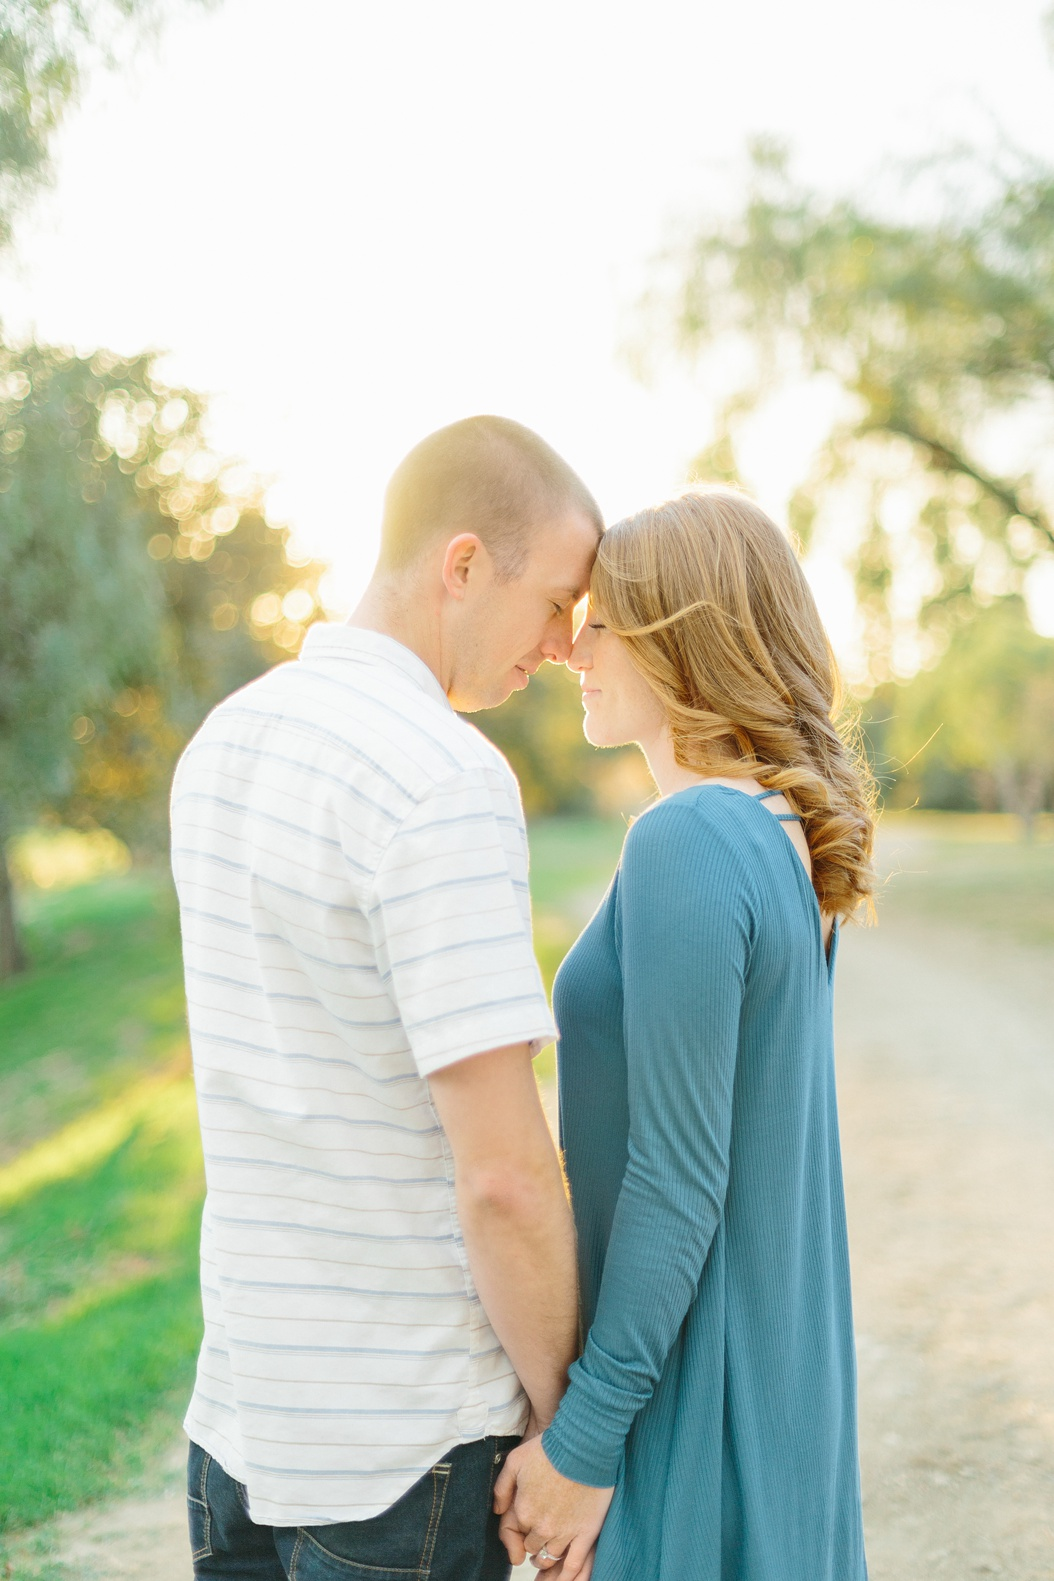 Open Field Engagement Session Near Los Angeles (66)